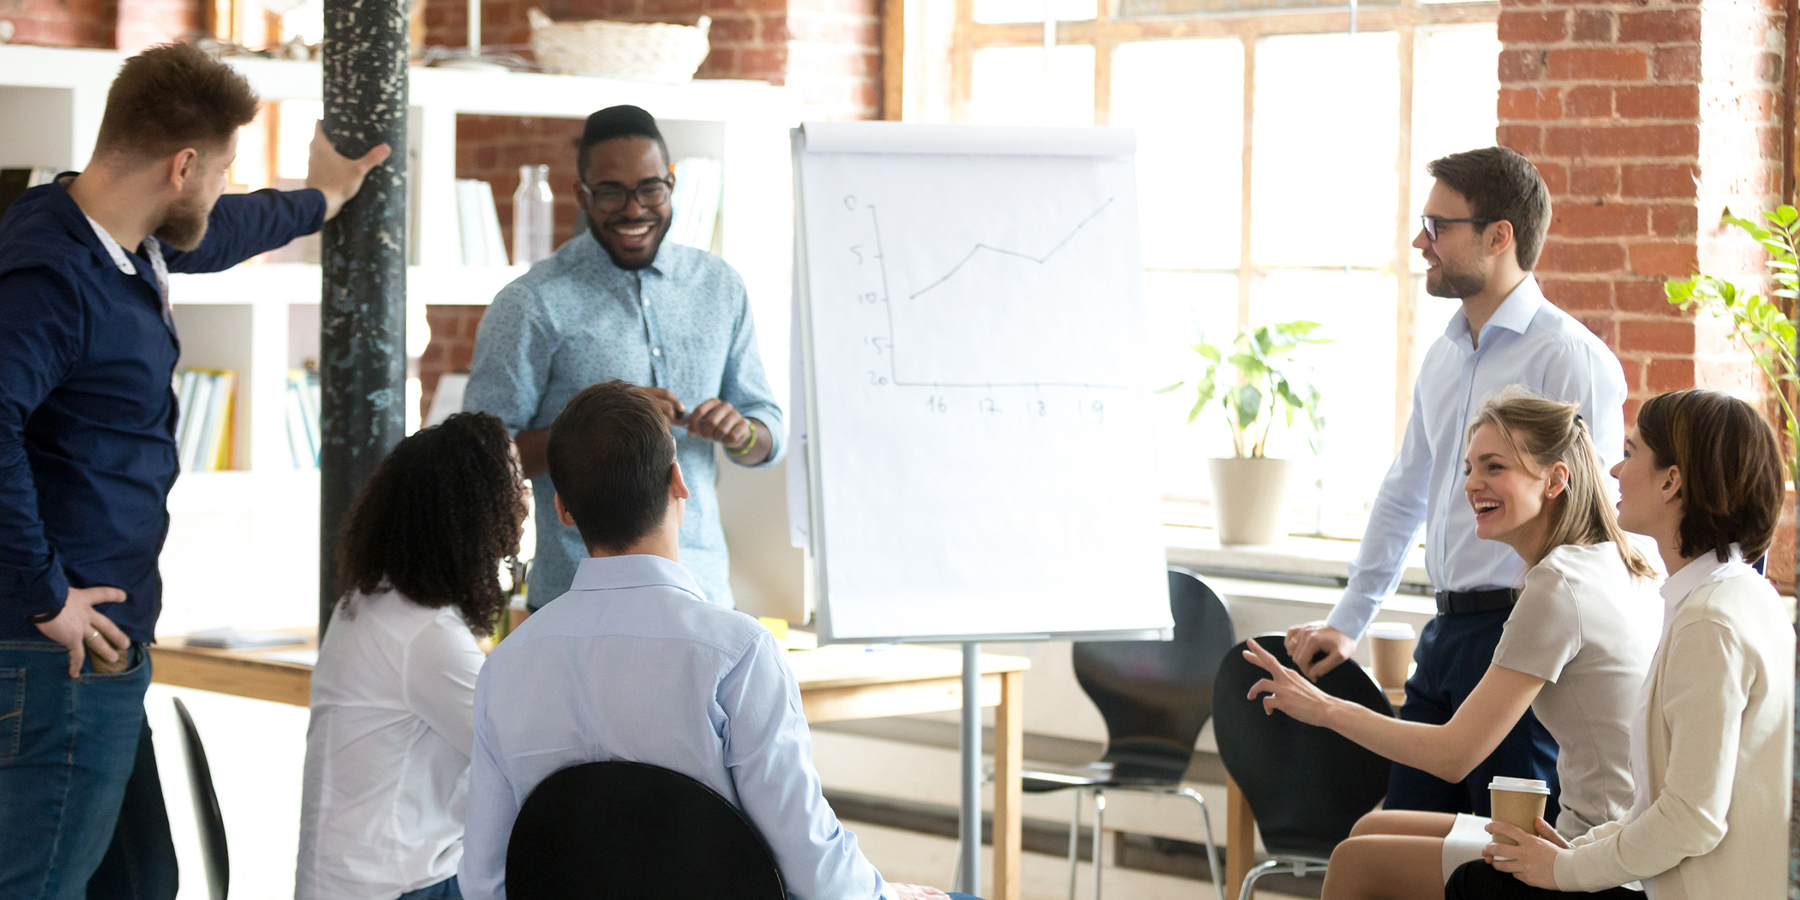 Leadership is Critical to Team Performance, Study Shows